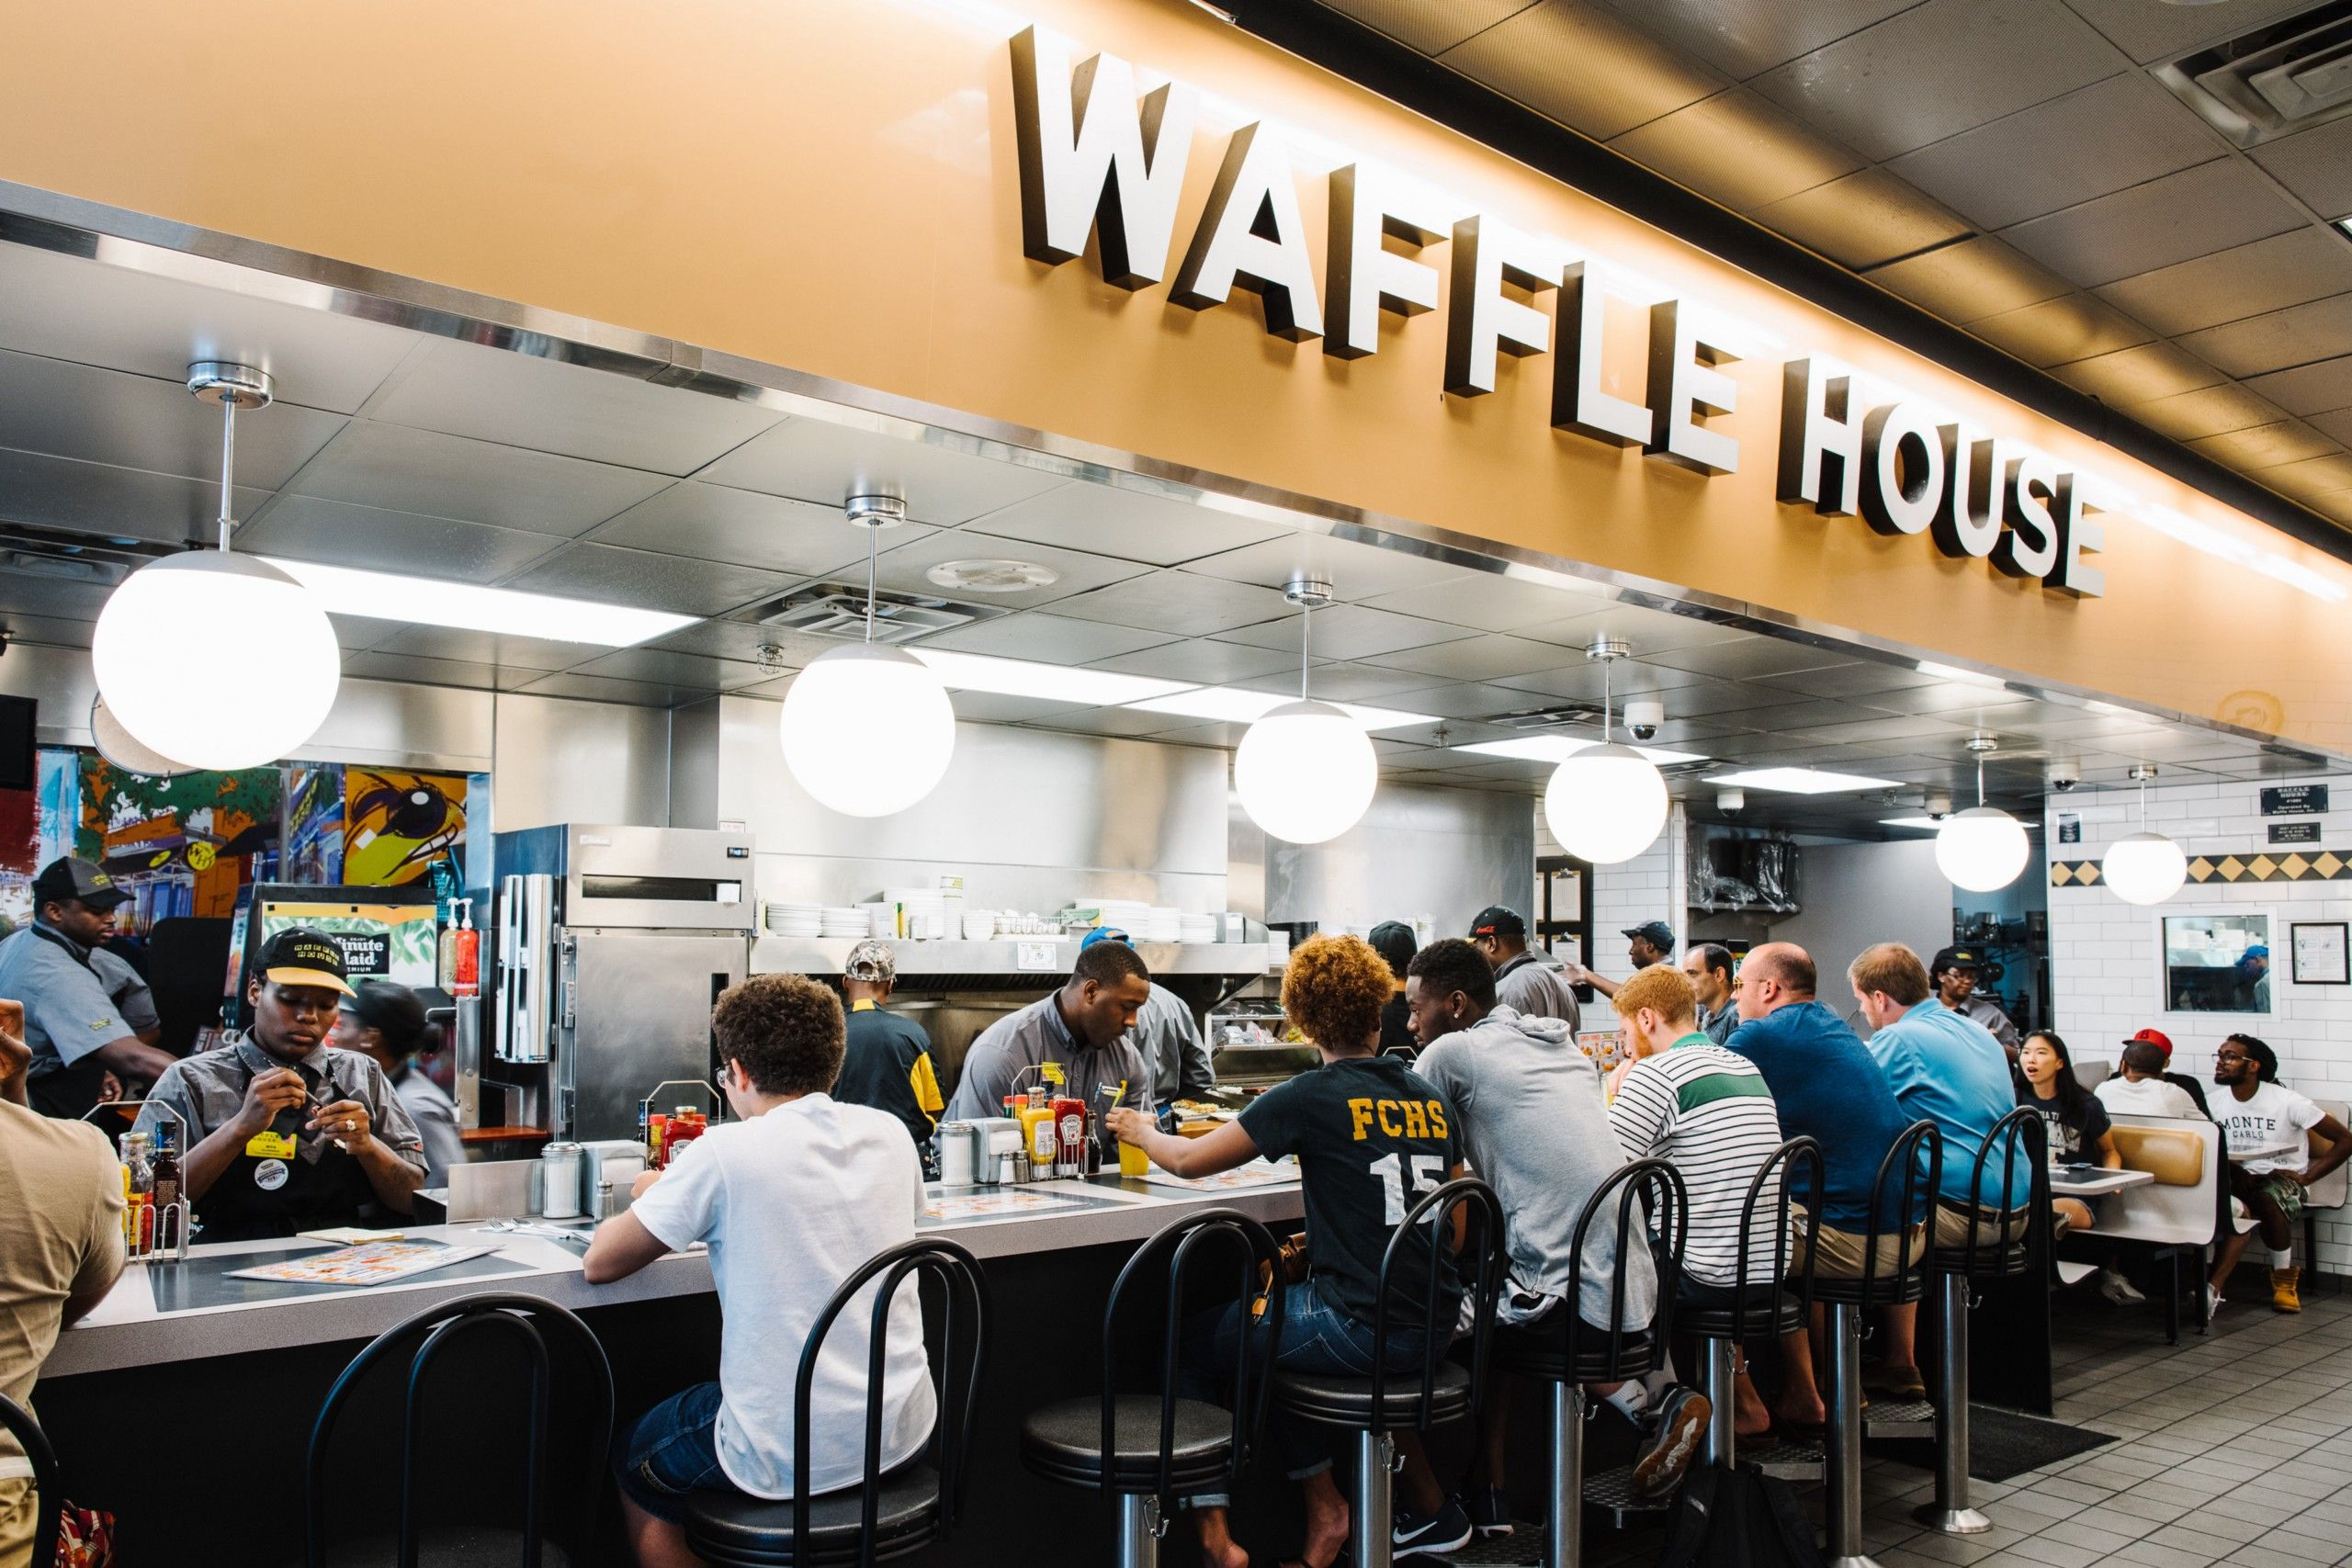 Meet The Short Order Cooks So Good Waffle House Officially Calls Them Rockstars Waffle House Best Cooking